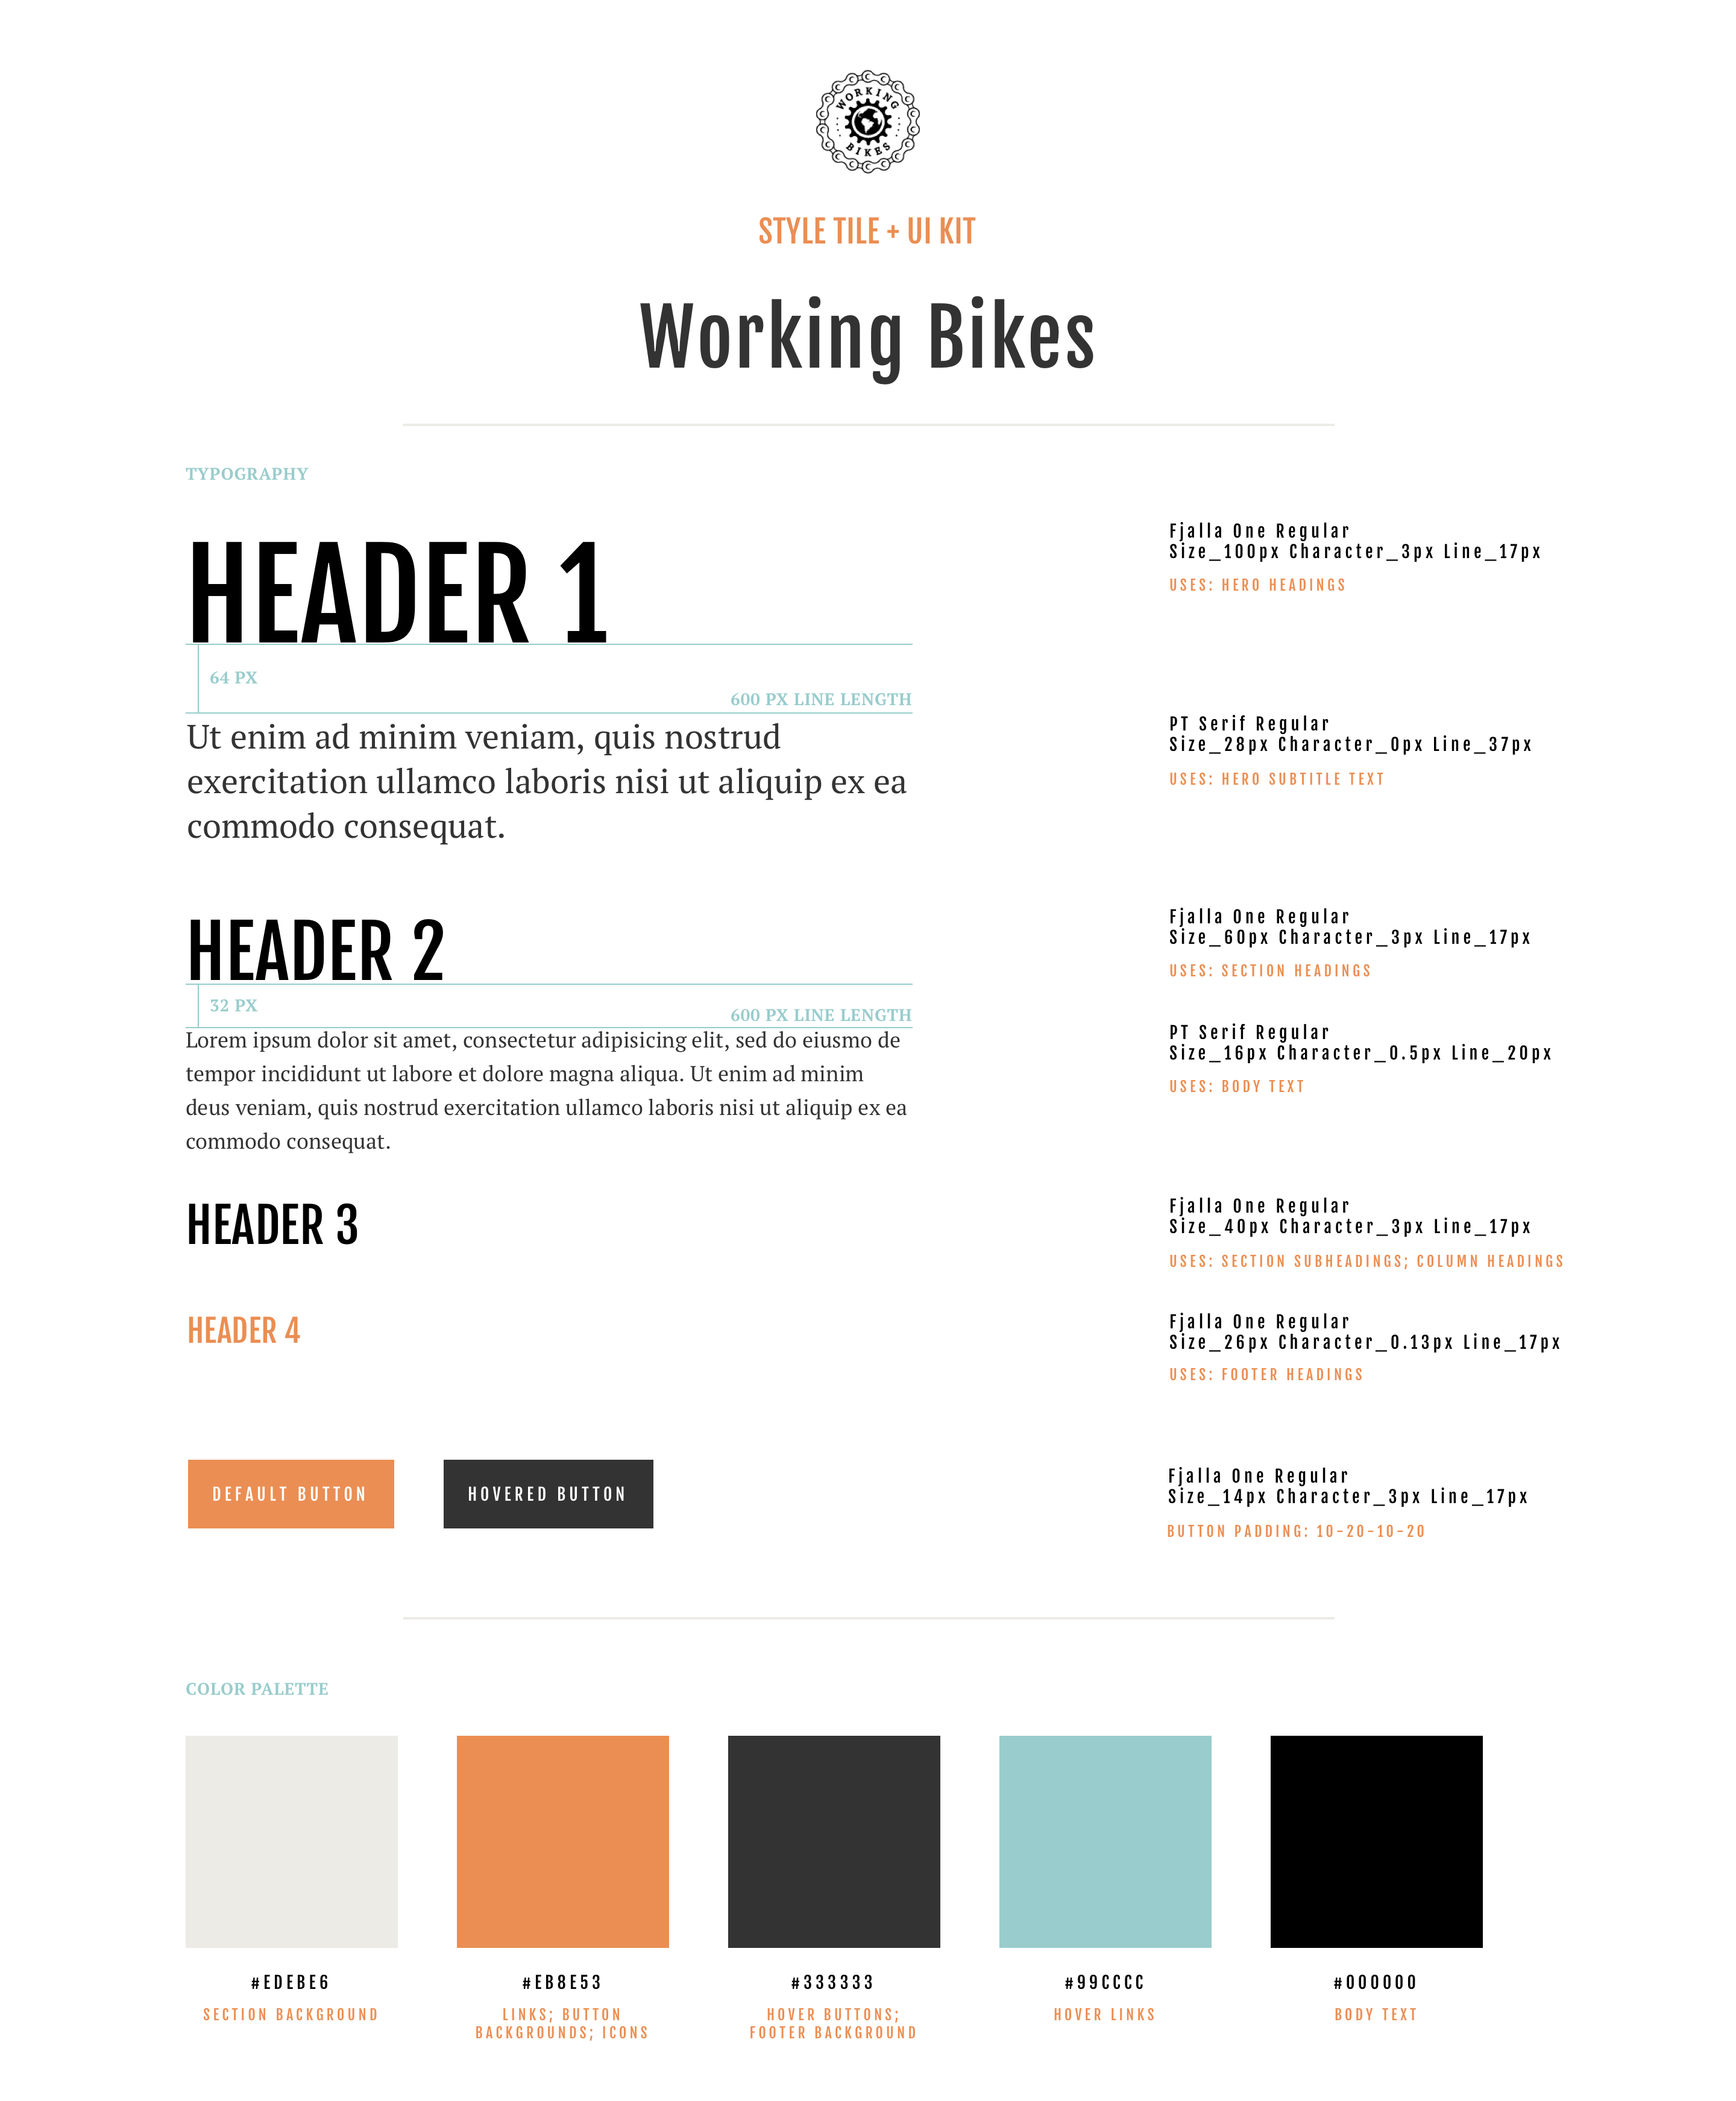 A design document showing the final branding and visual design elements, including typography, color palette, sizing guidelines,  and sample buttons.